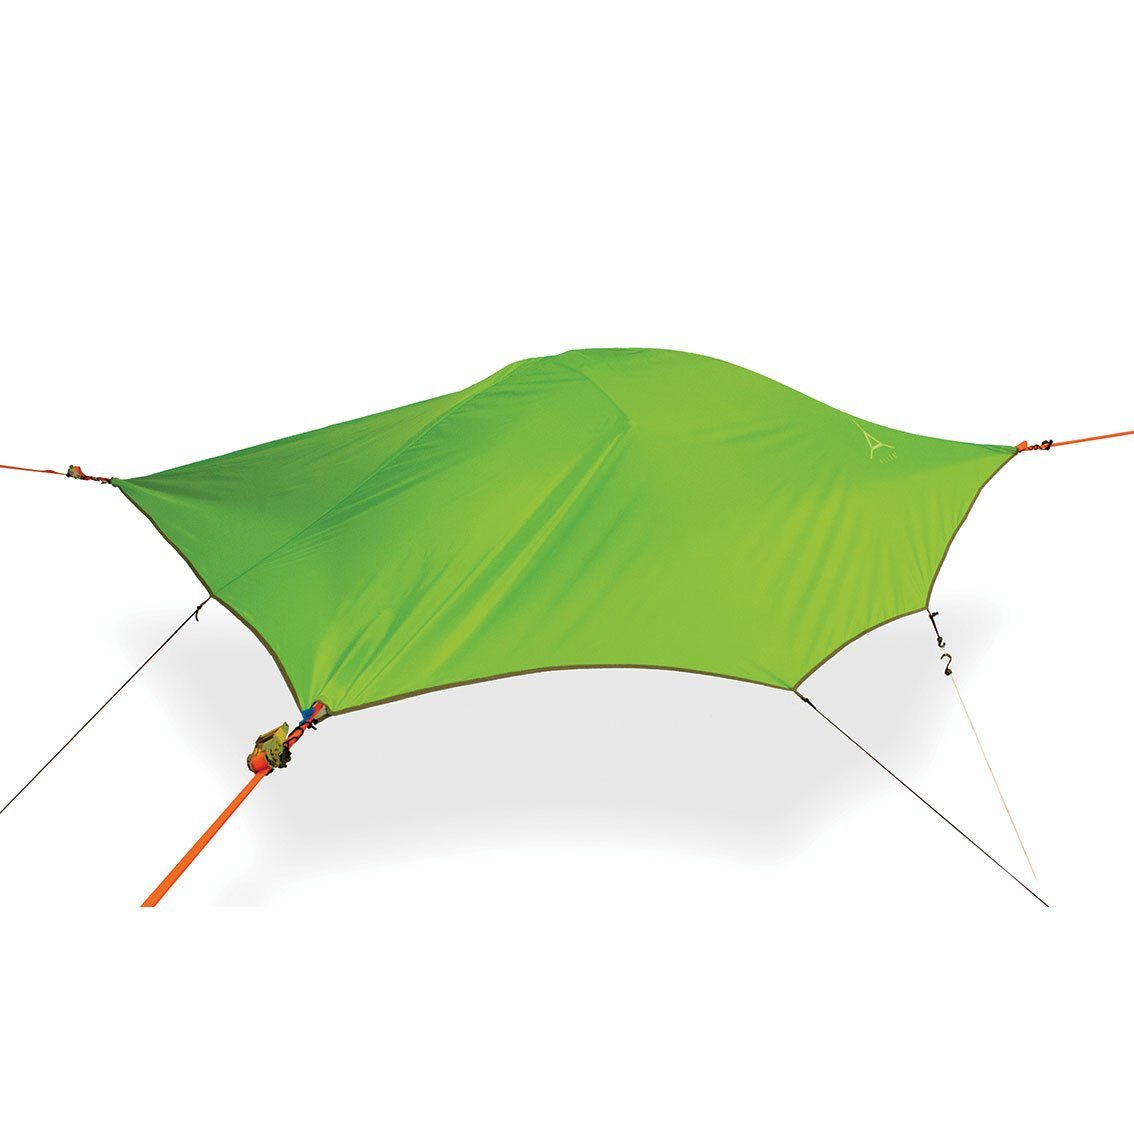 Tentsile | Flite Tree Tent | 2 Man Lightweight Suspended Hammock Tent | Fresh Green